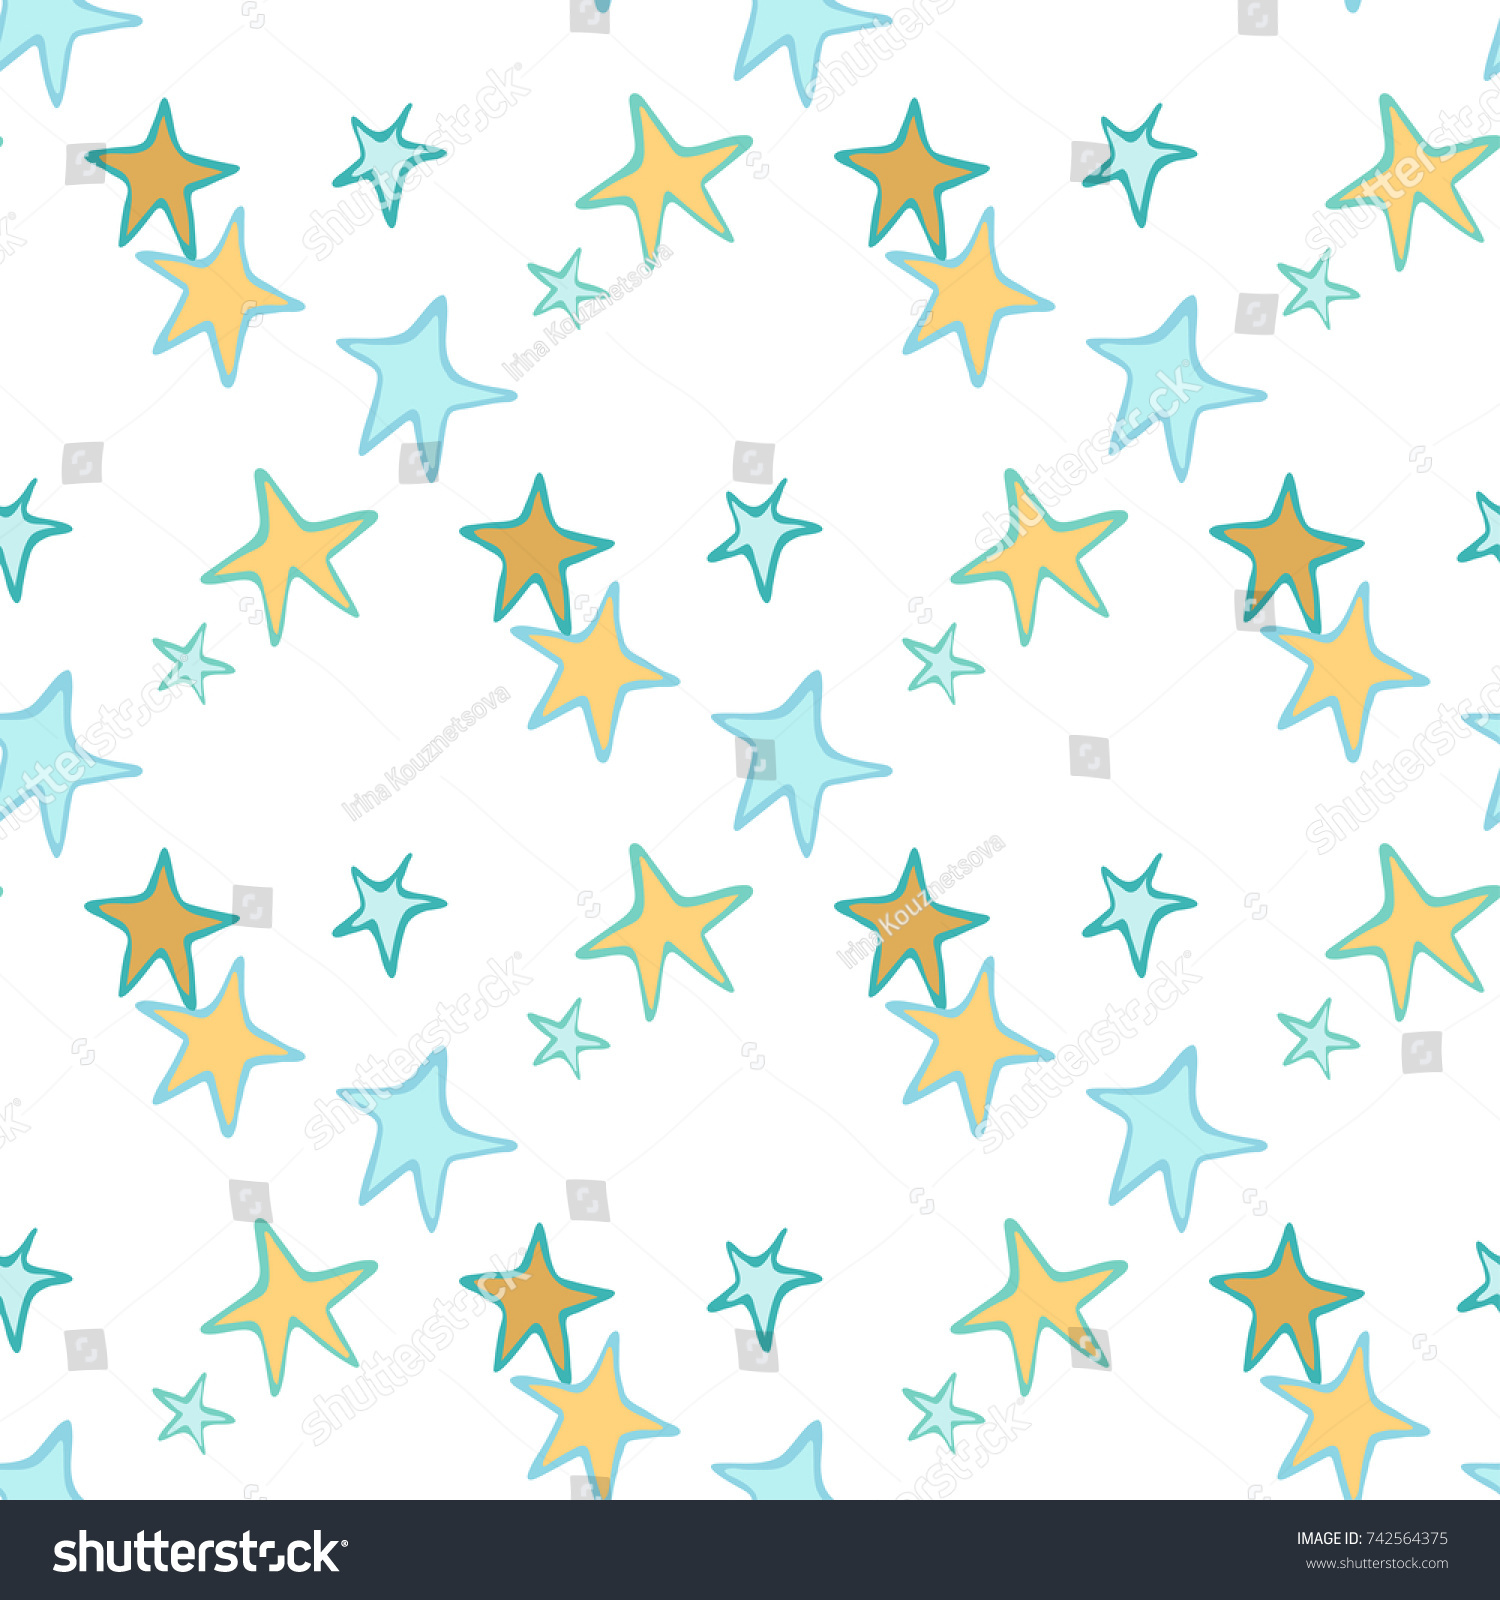 Simple Baby Seamless Pattern With Hand Drawn Stars And Children Room Wallpaper Design